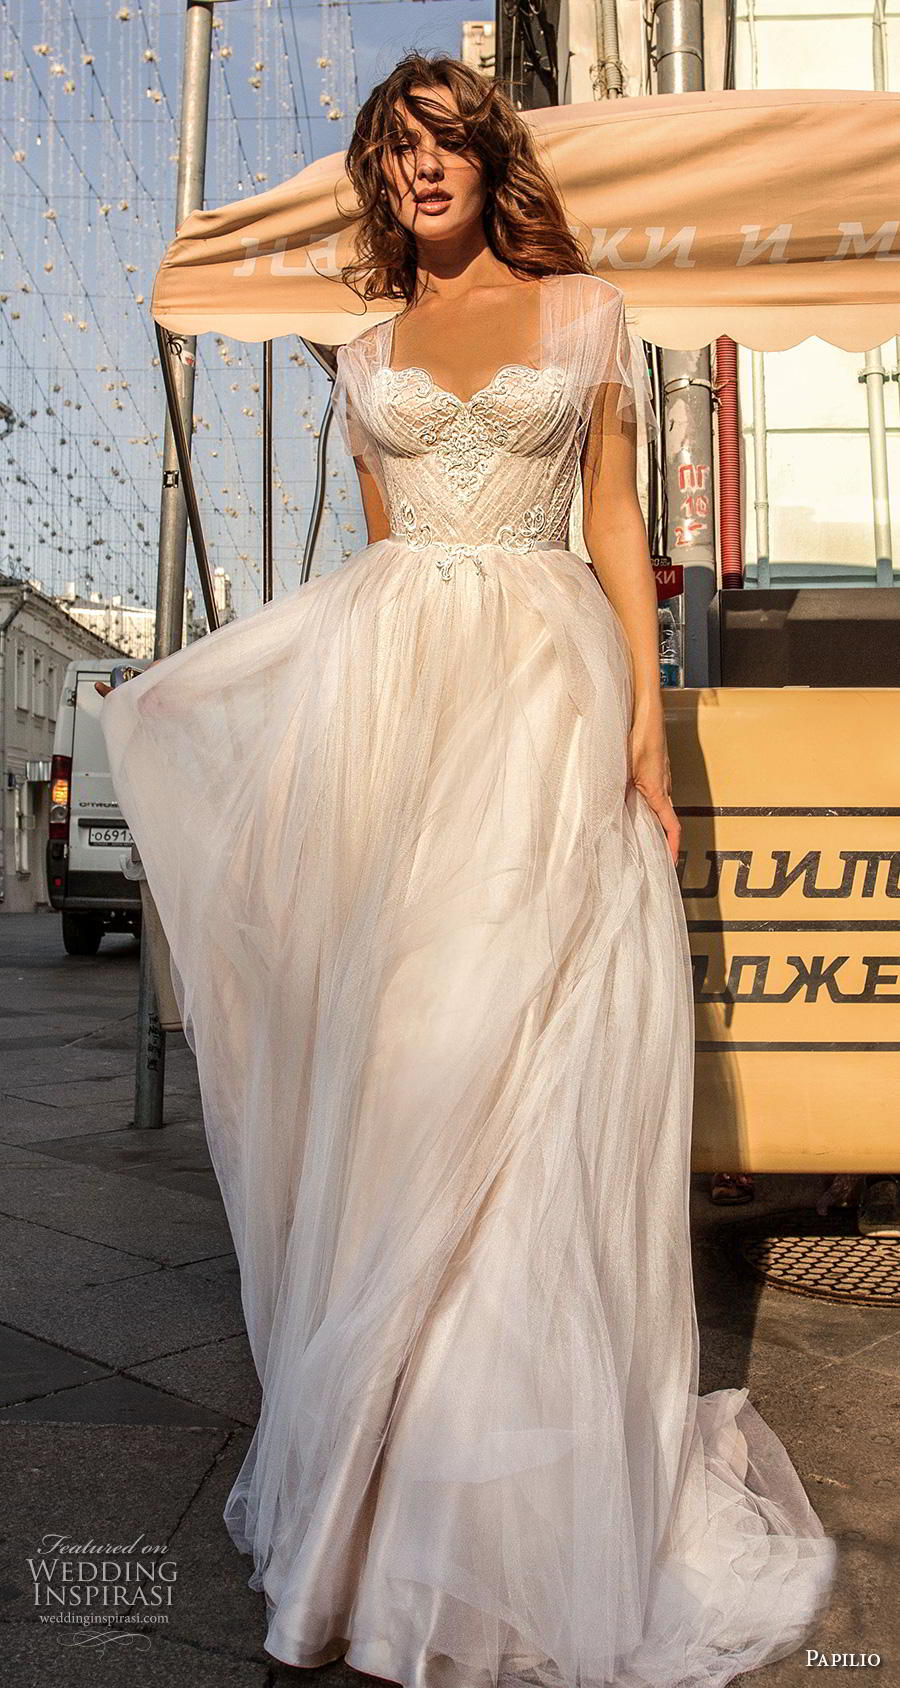 papilio 2019 bridal butterfly sleeves illusion jewel sweetheart neckline heavily embellished bodice romantic soft a  line wedding dress corset back sweep train (5) lv